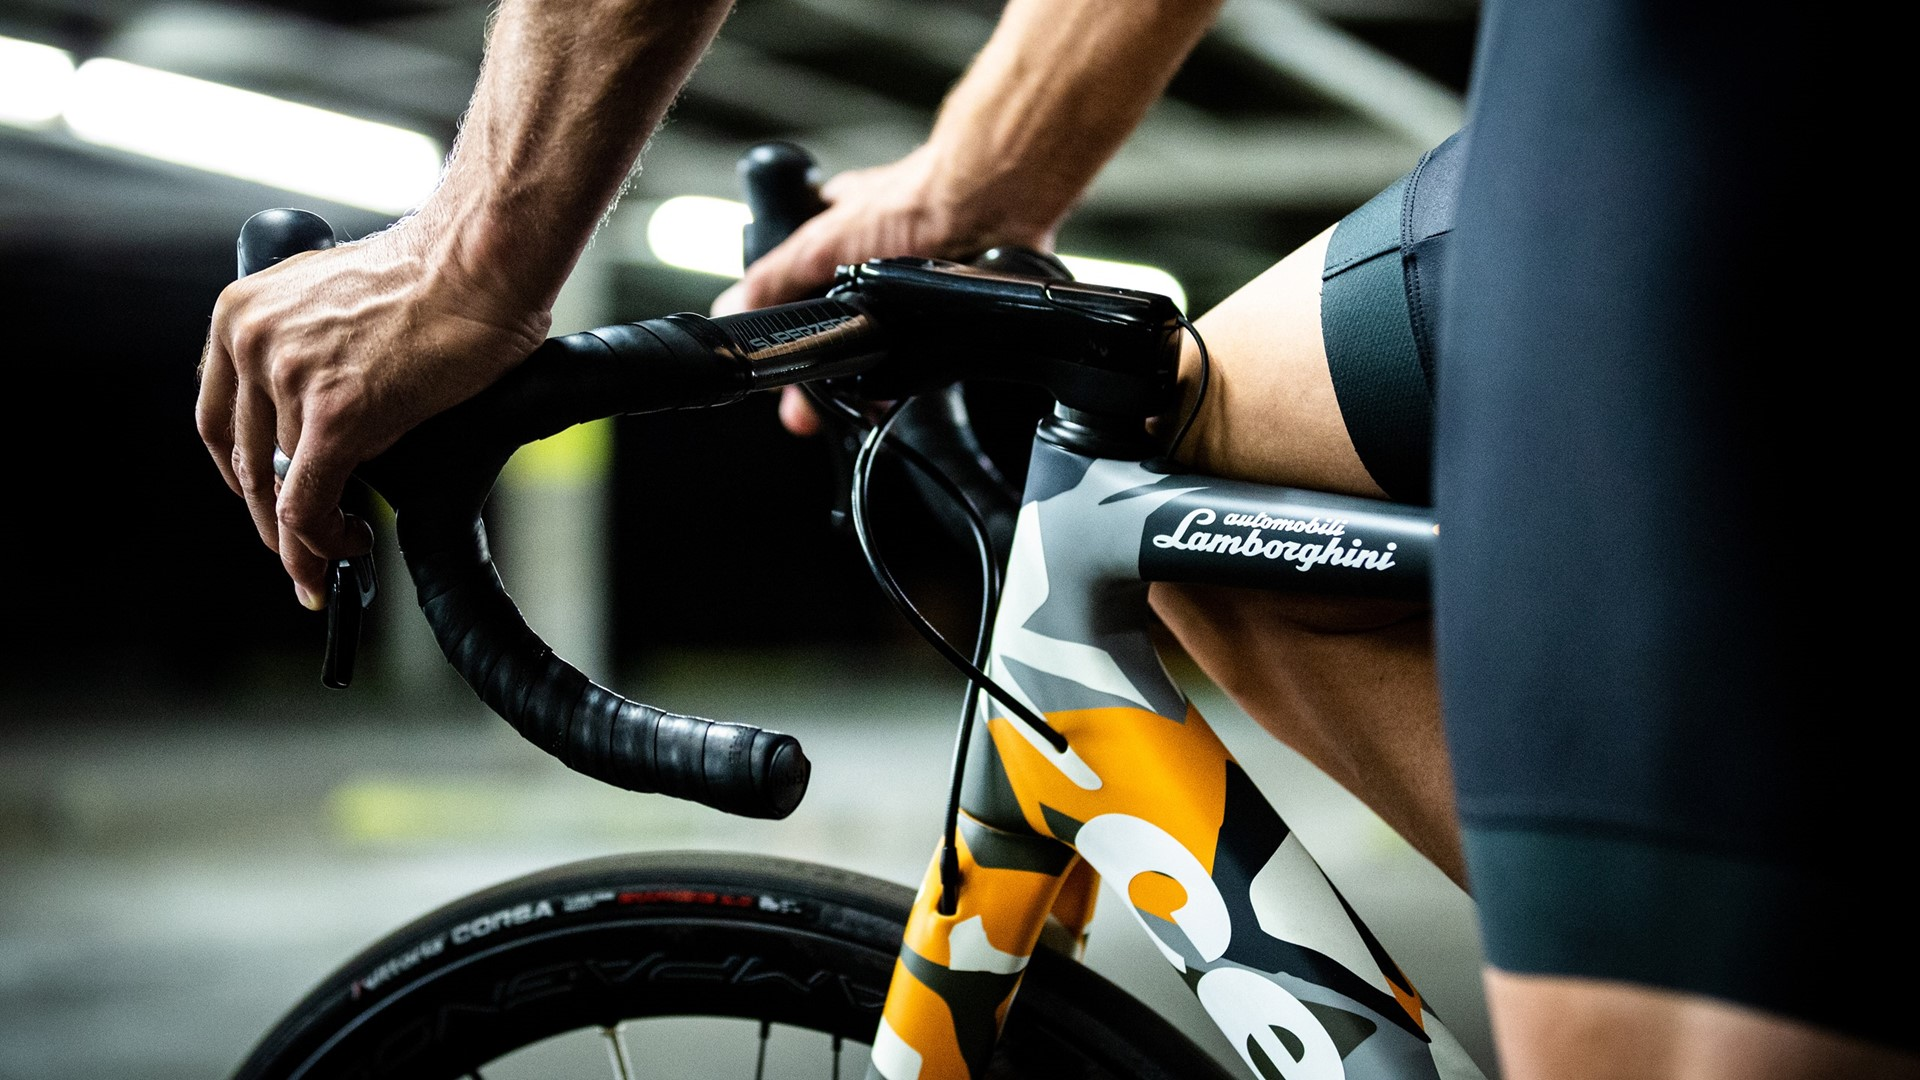 Automobili Lamborghini and Cervélo present the new R5 bicycle in a limited edition - Image 7